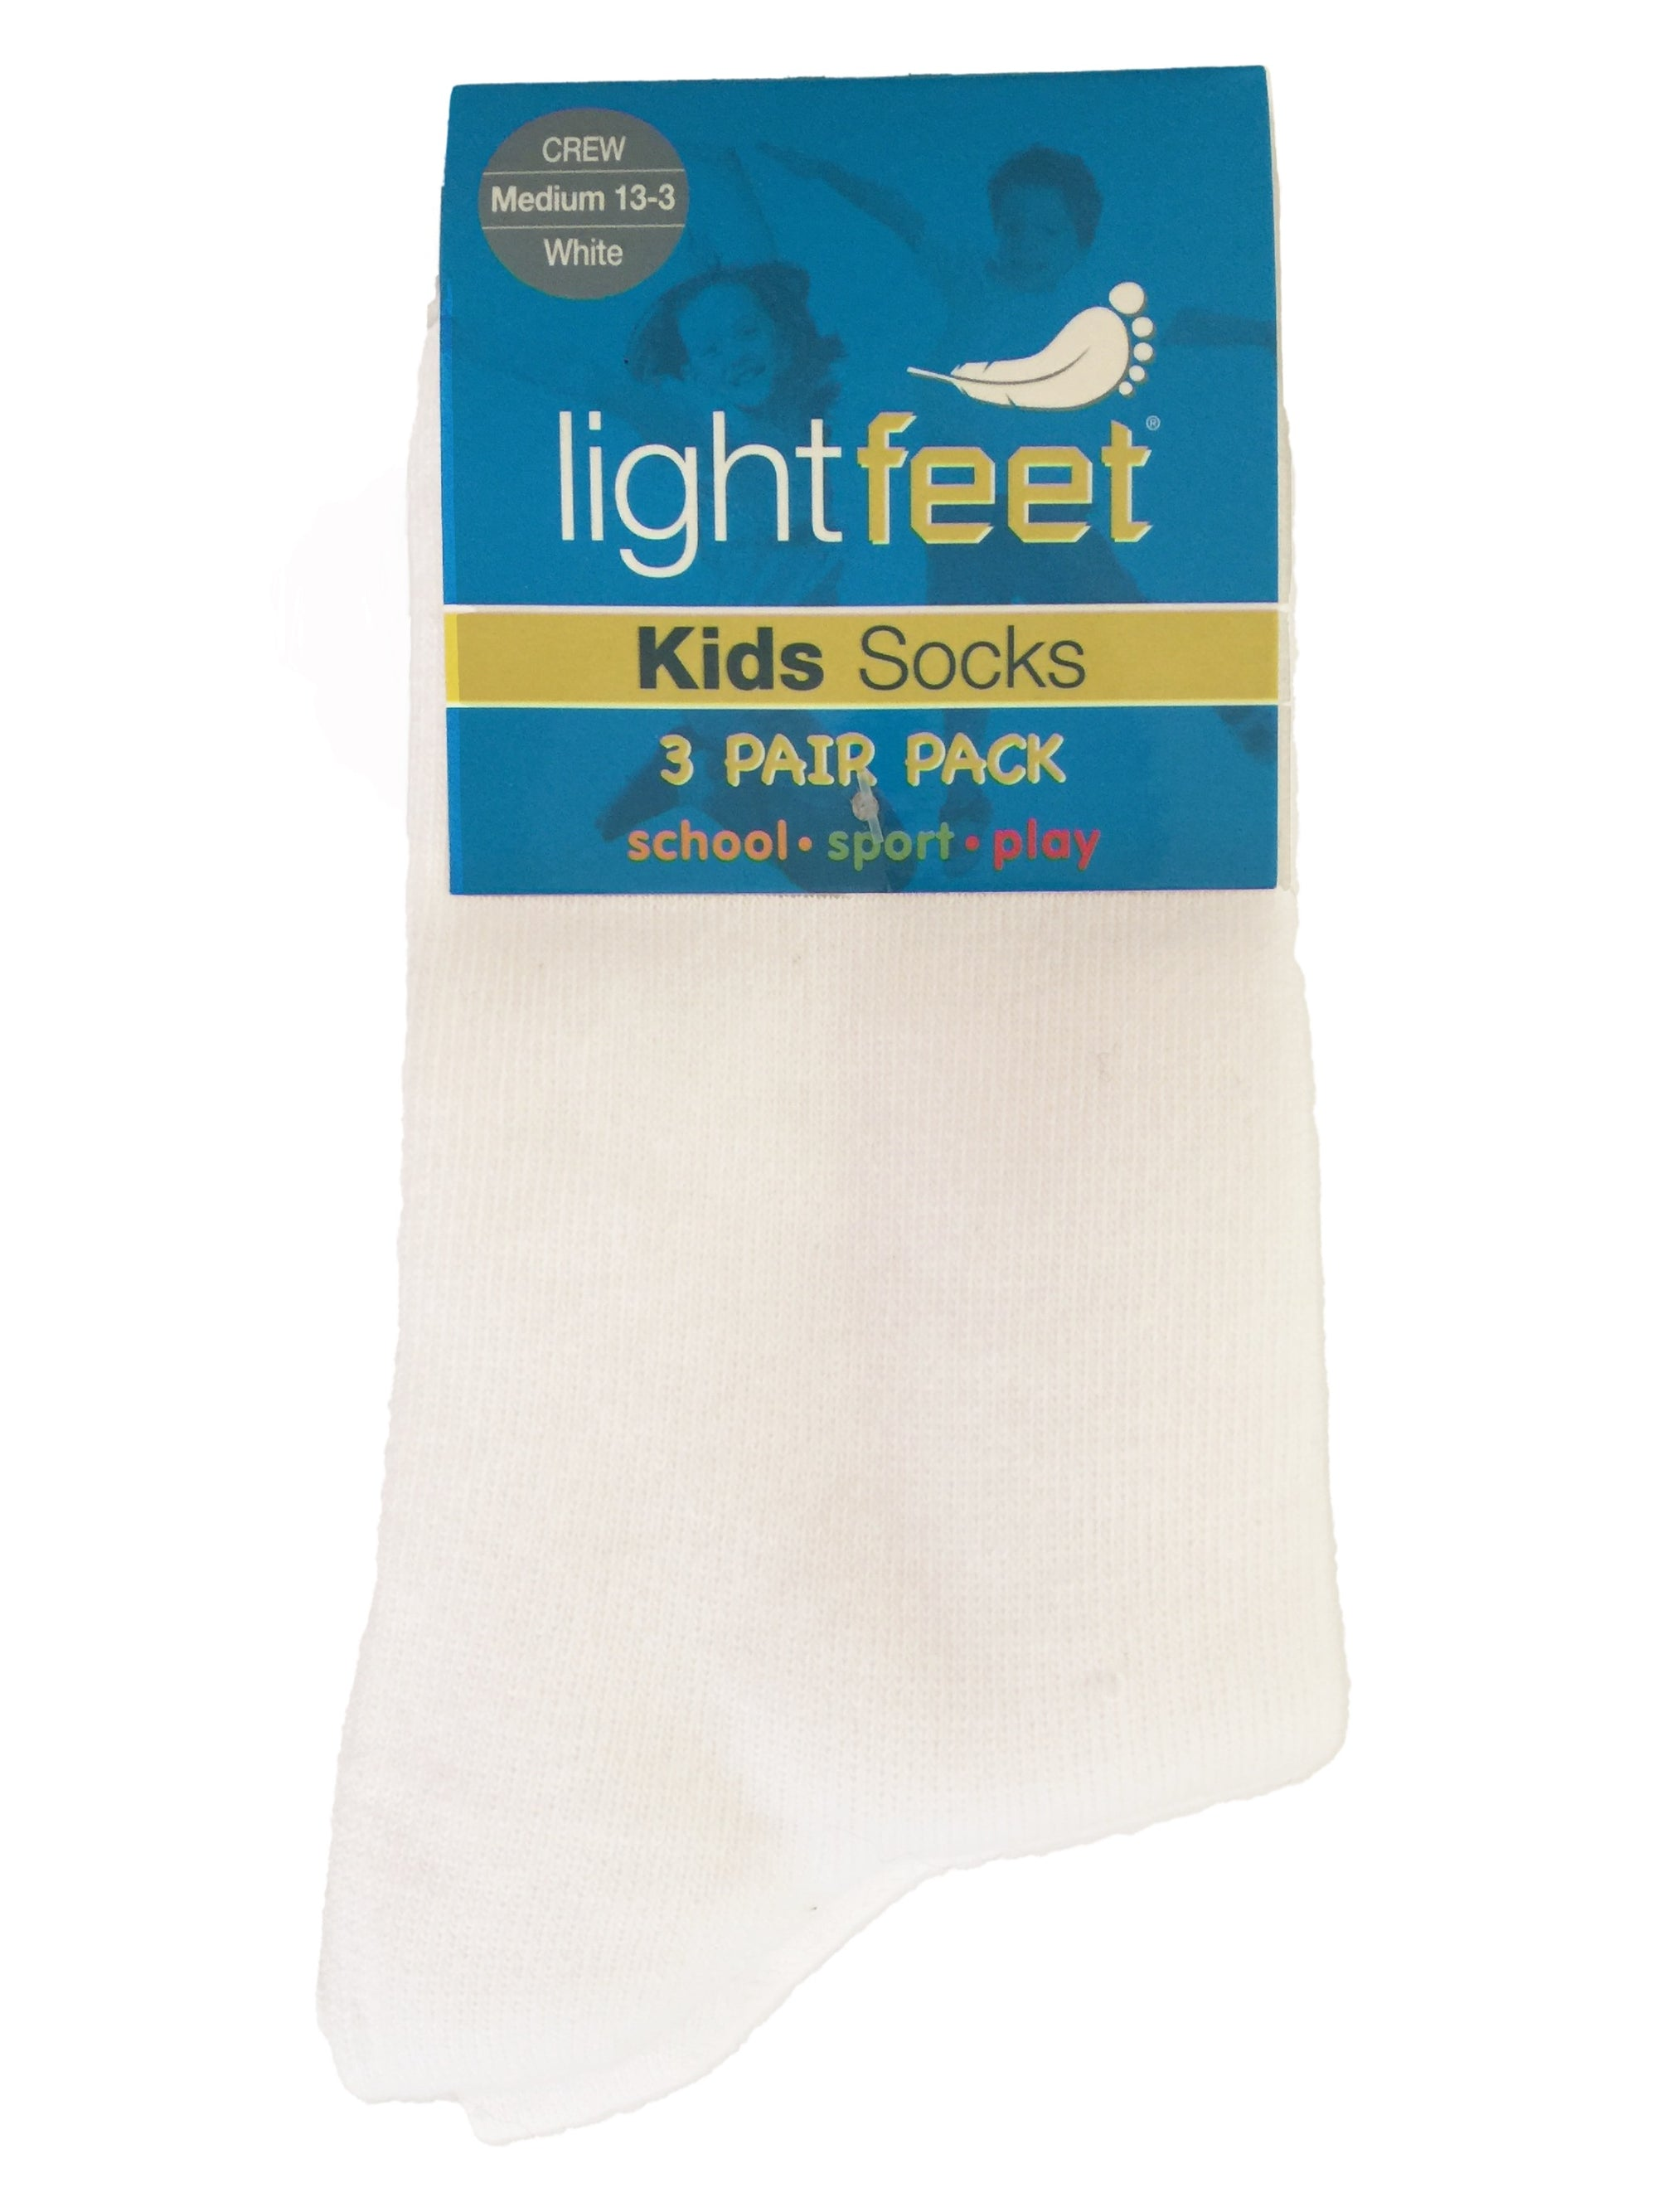 Lightfeet Kids School | Sport | Play Socks 3 Pack (Crew) - White